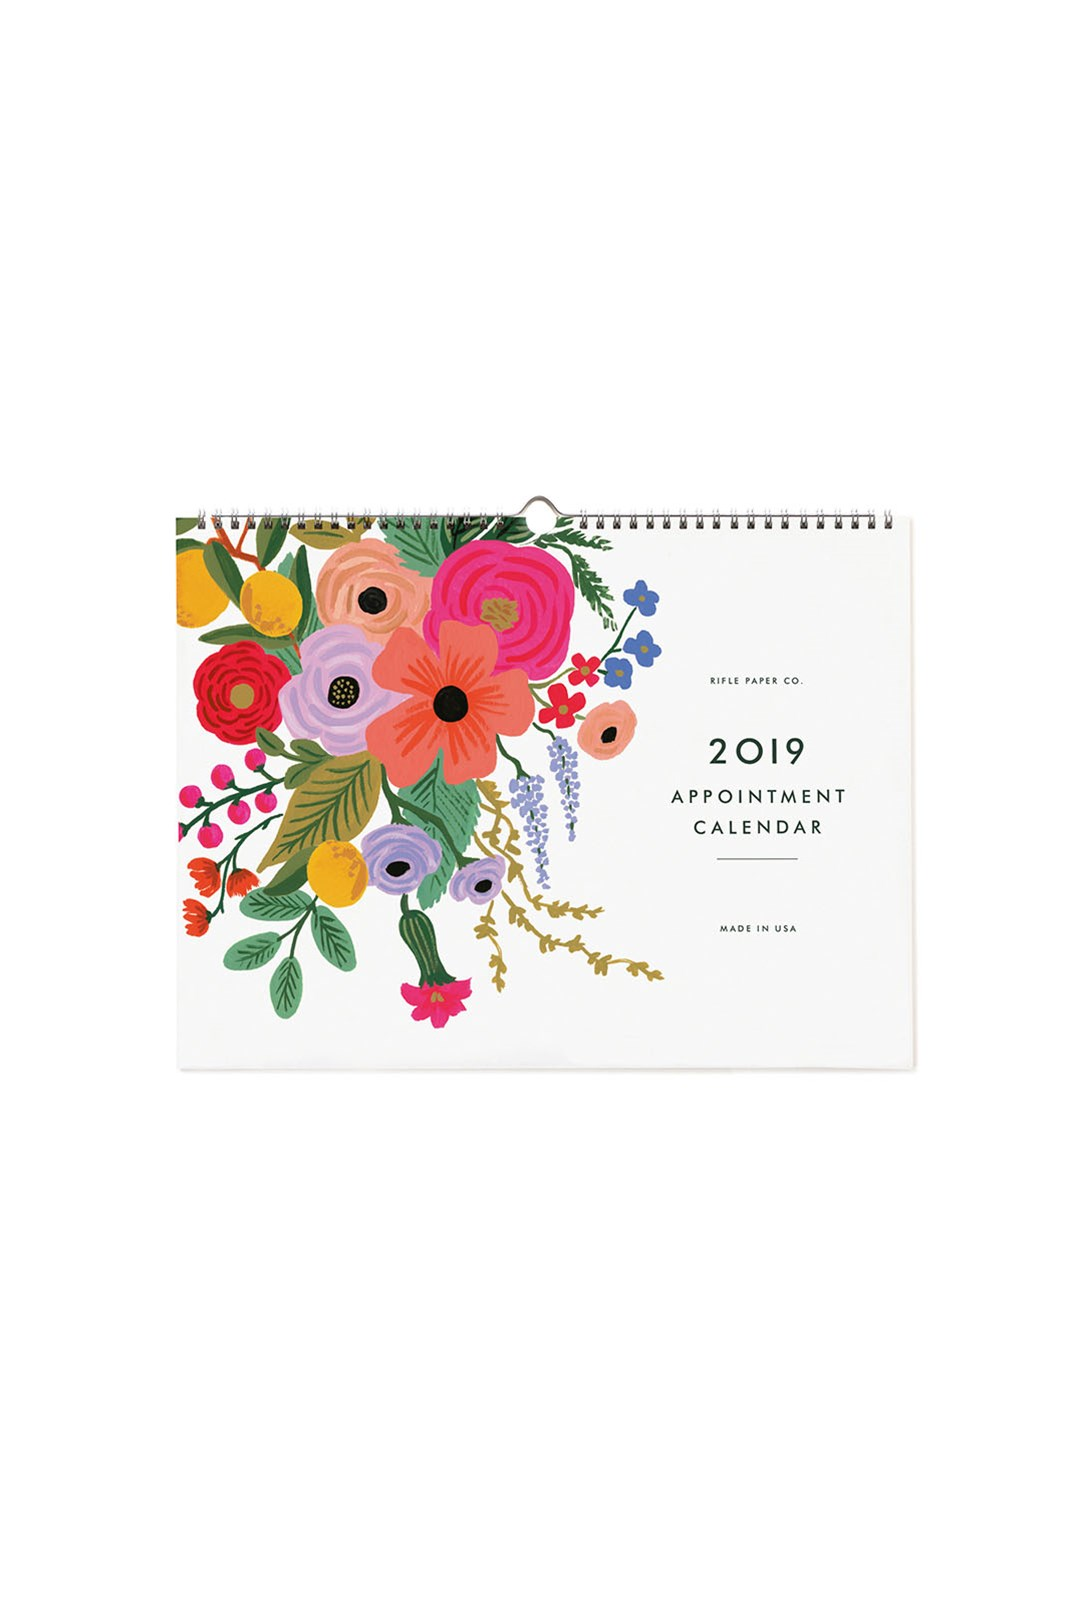 Rifle Paper Co - 2019 Appointment Calendar - Garden Party